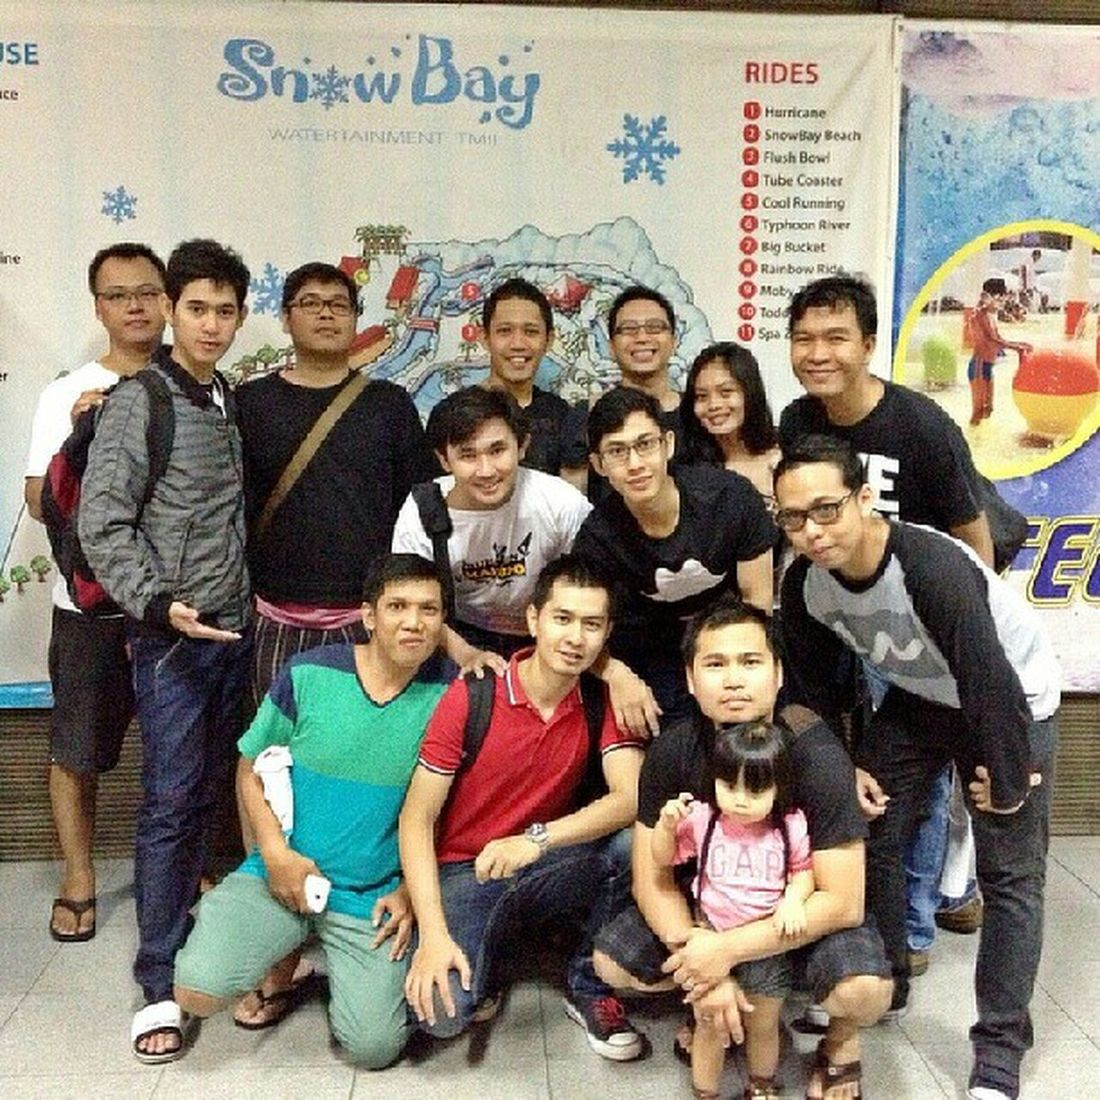 With team erajaya.. Snowbay